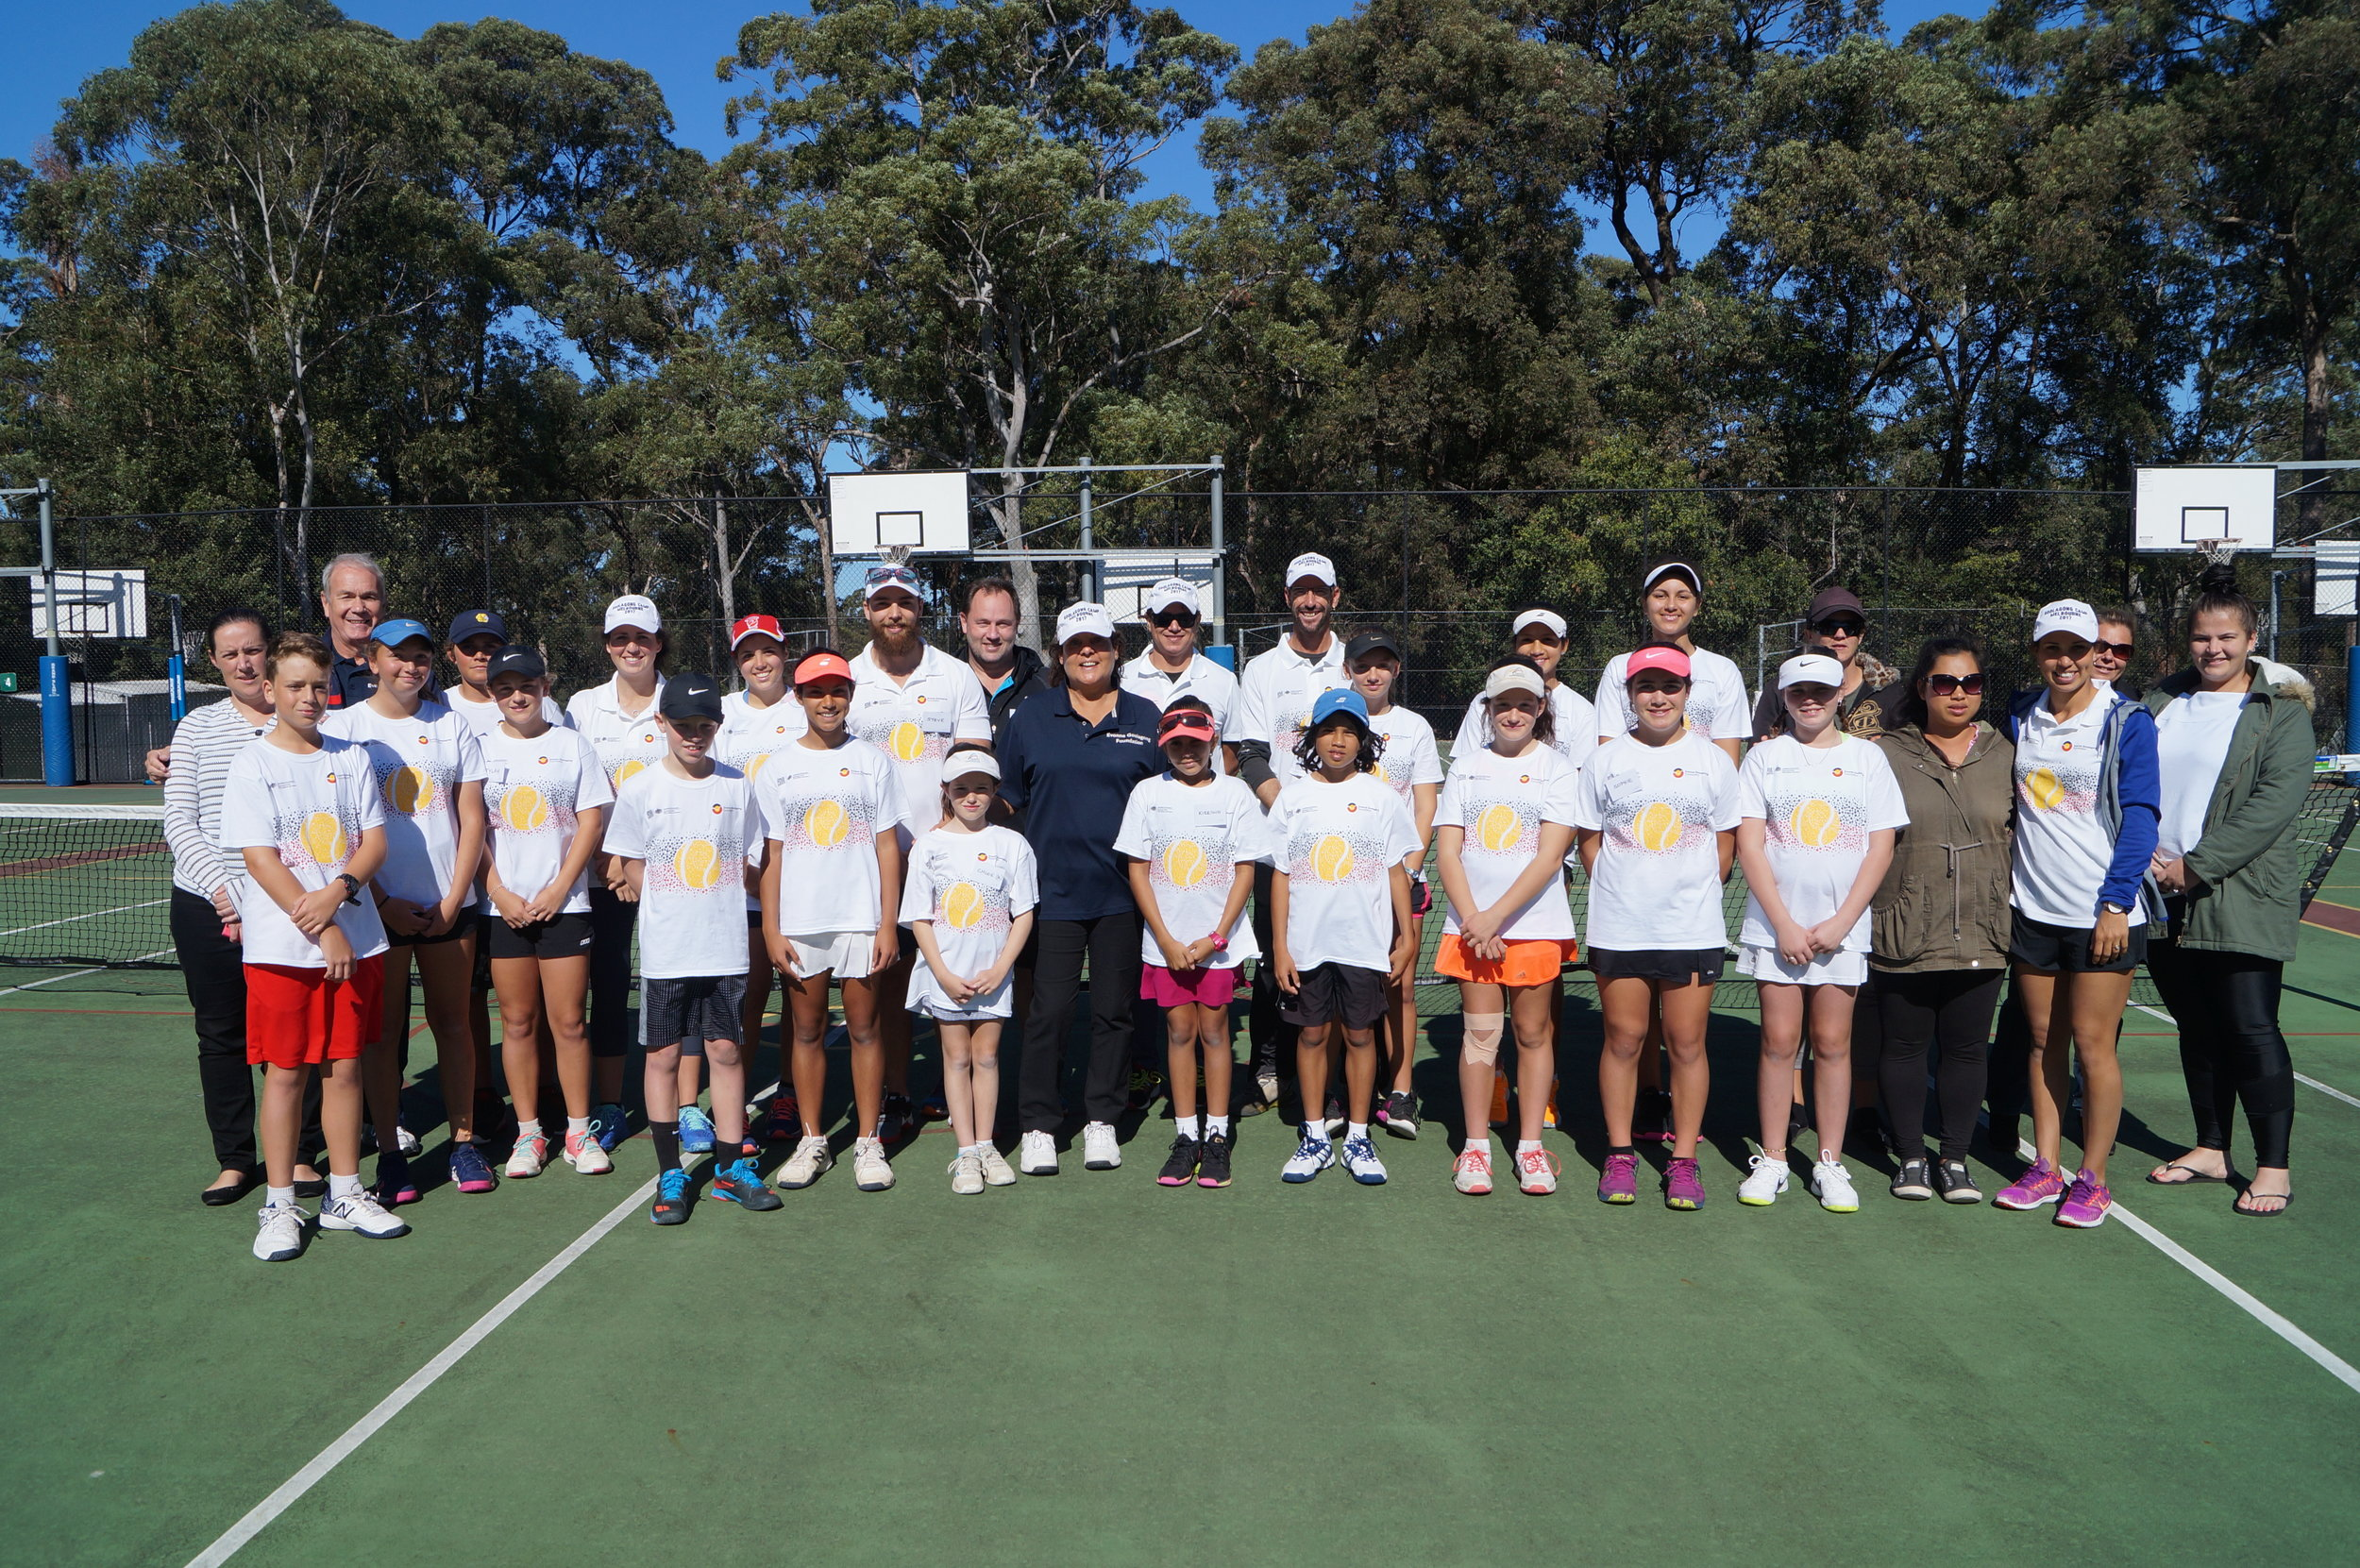 GSDC Syd 2017 – the entire cast and crew! Youngsters from QLD, NSW and TAS attended with parents and EGF coaches – a great weekend!